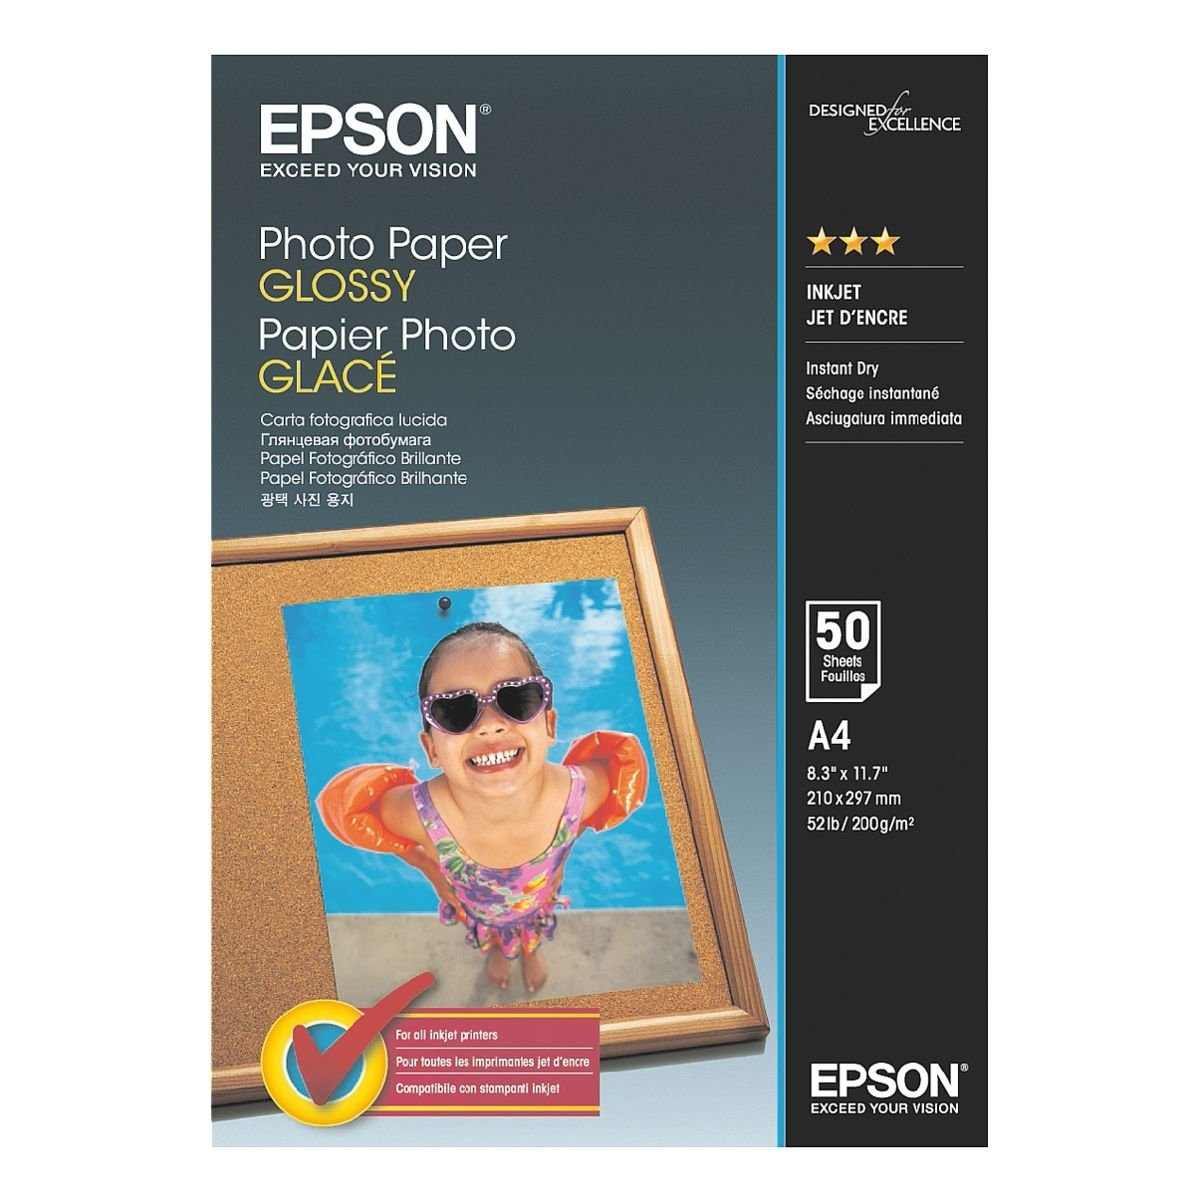 Epson Fotopapier »Photo Paper Glossy«